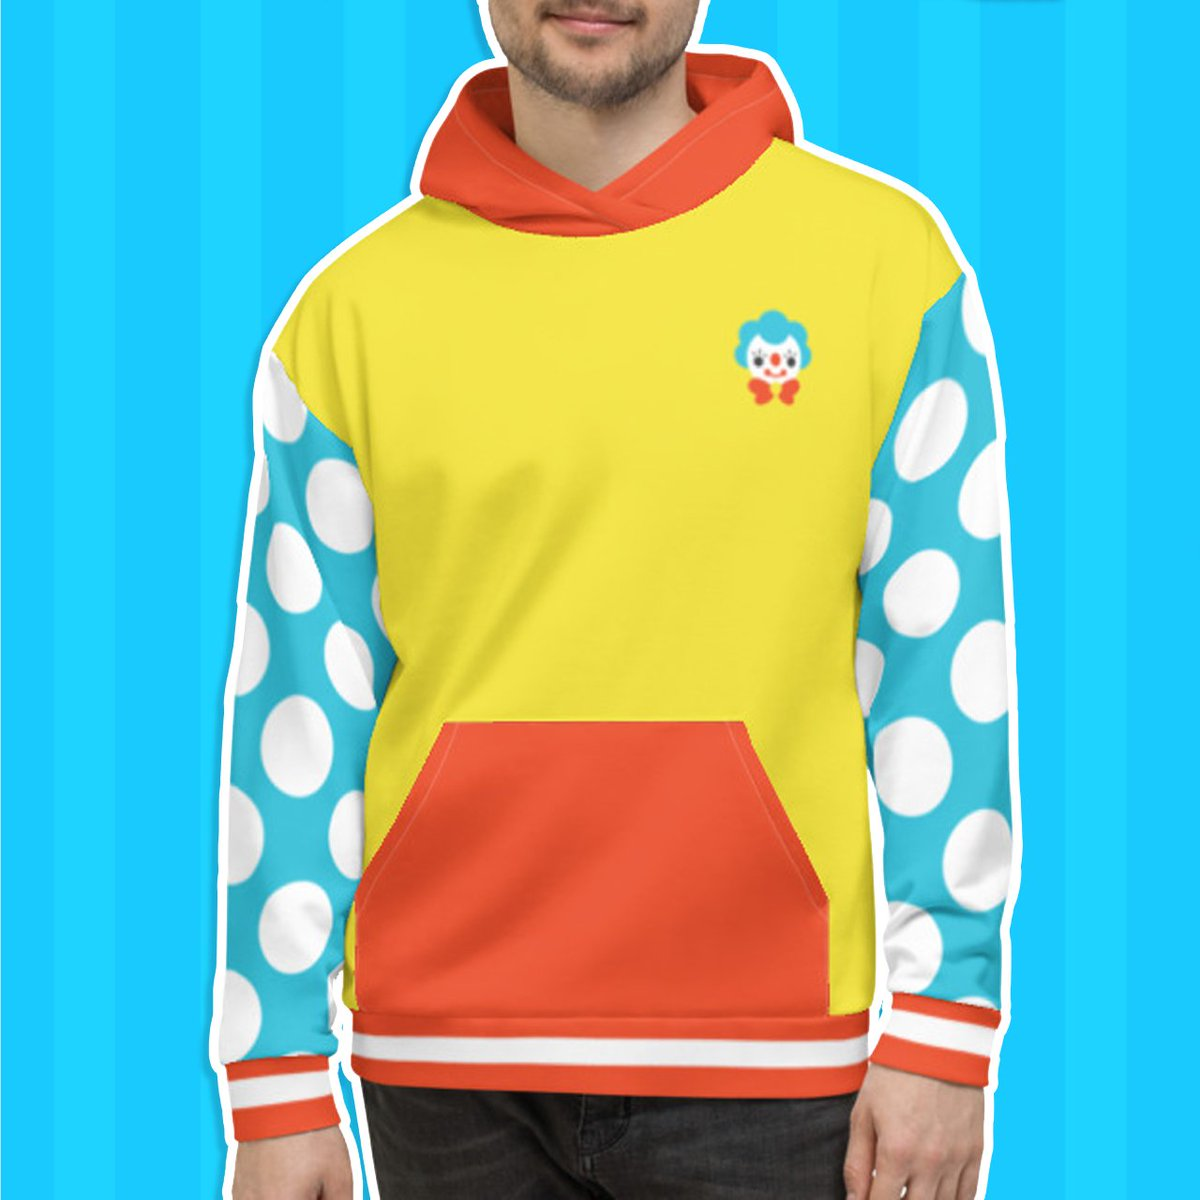 PREORDERS for the 2.0 Primary Hoodie are open! 🤡 It will be ready in about a month and includes a new chest logo and teeth printed inside the pocket. Preorders close 1/27/2020 ✨